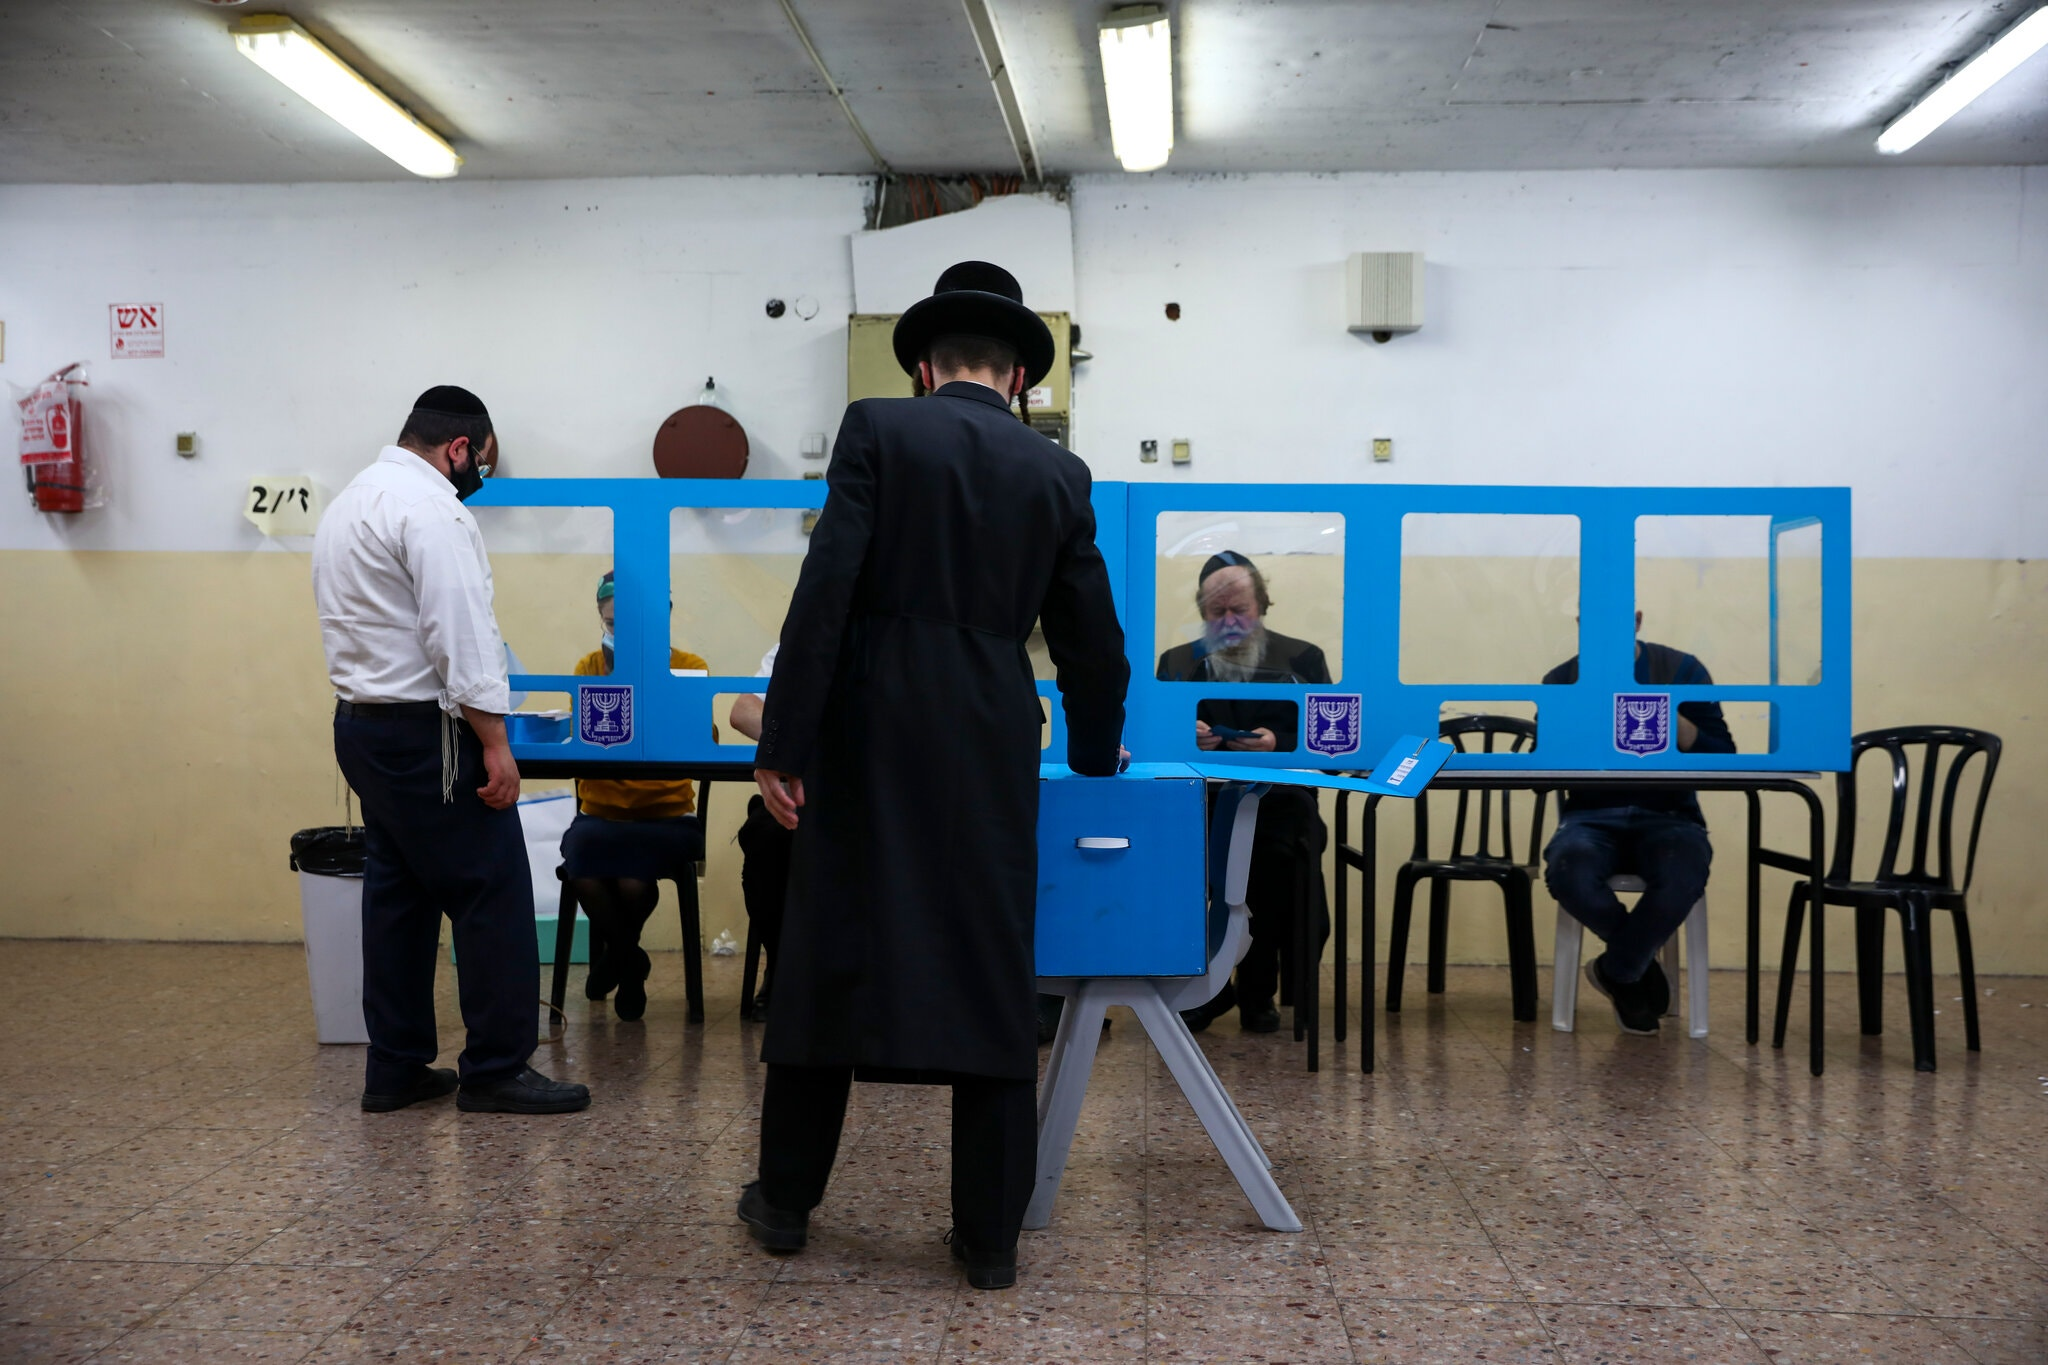 Fears over Israel's Coalition : Ultra-Orthodox face a fall from power